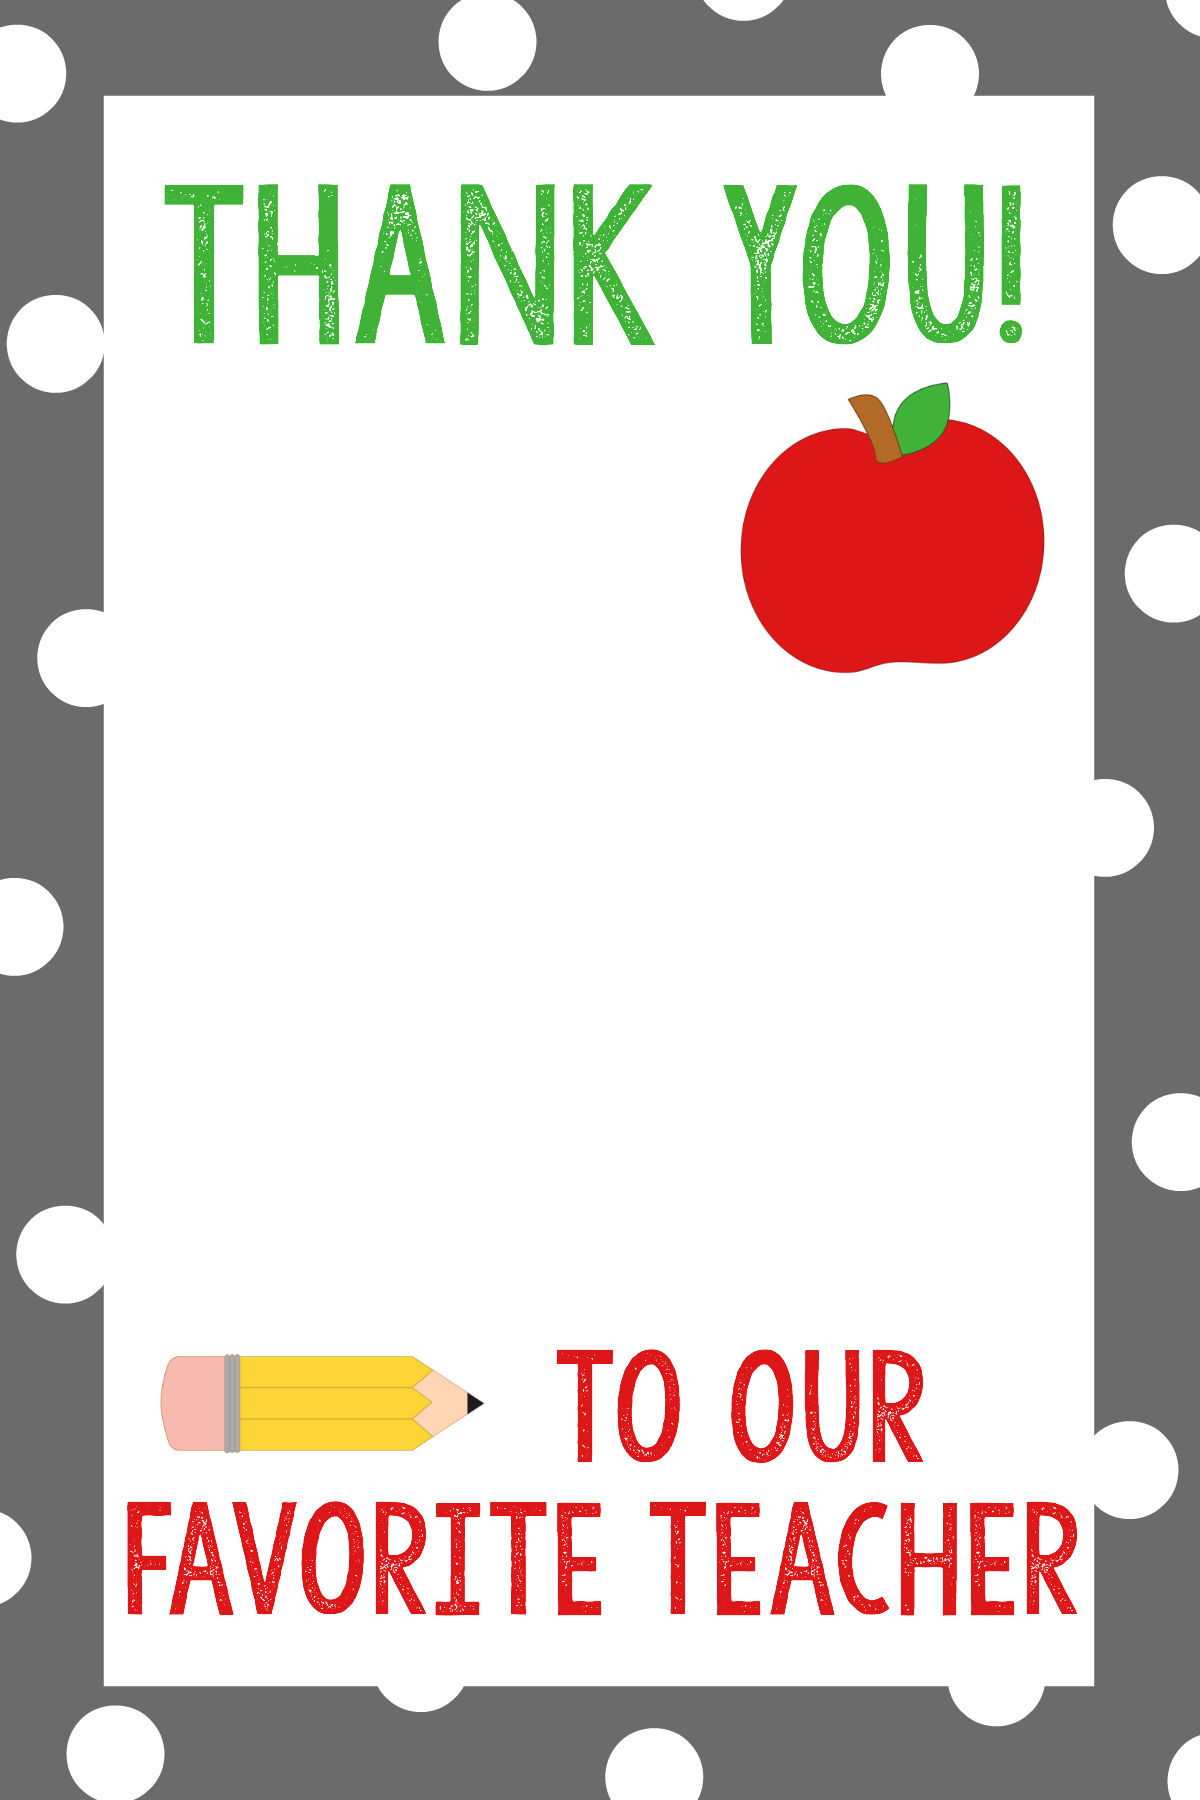 Thank You Gift For Teacher - School Staff Appreciation PNG